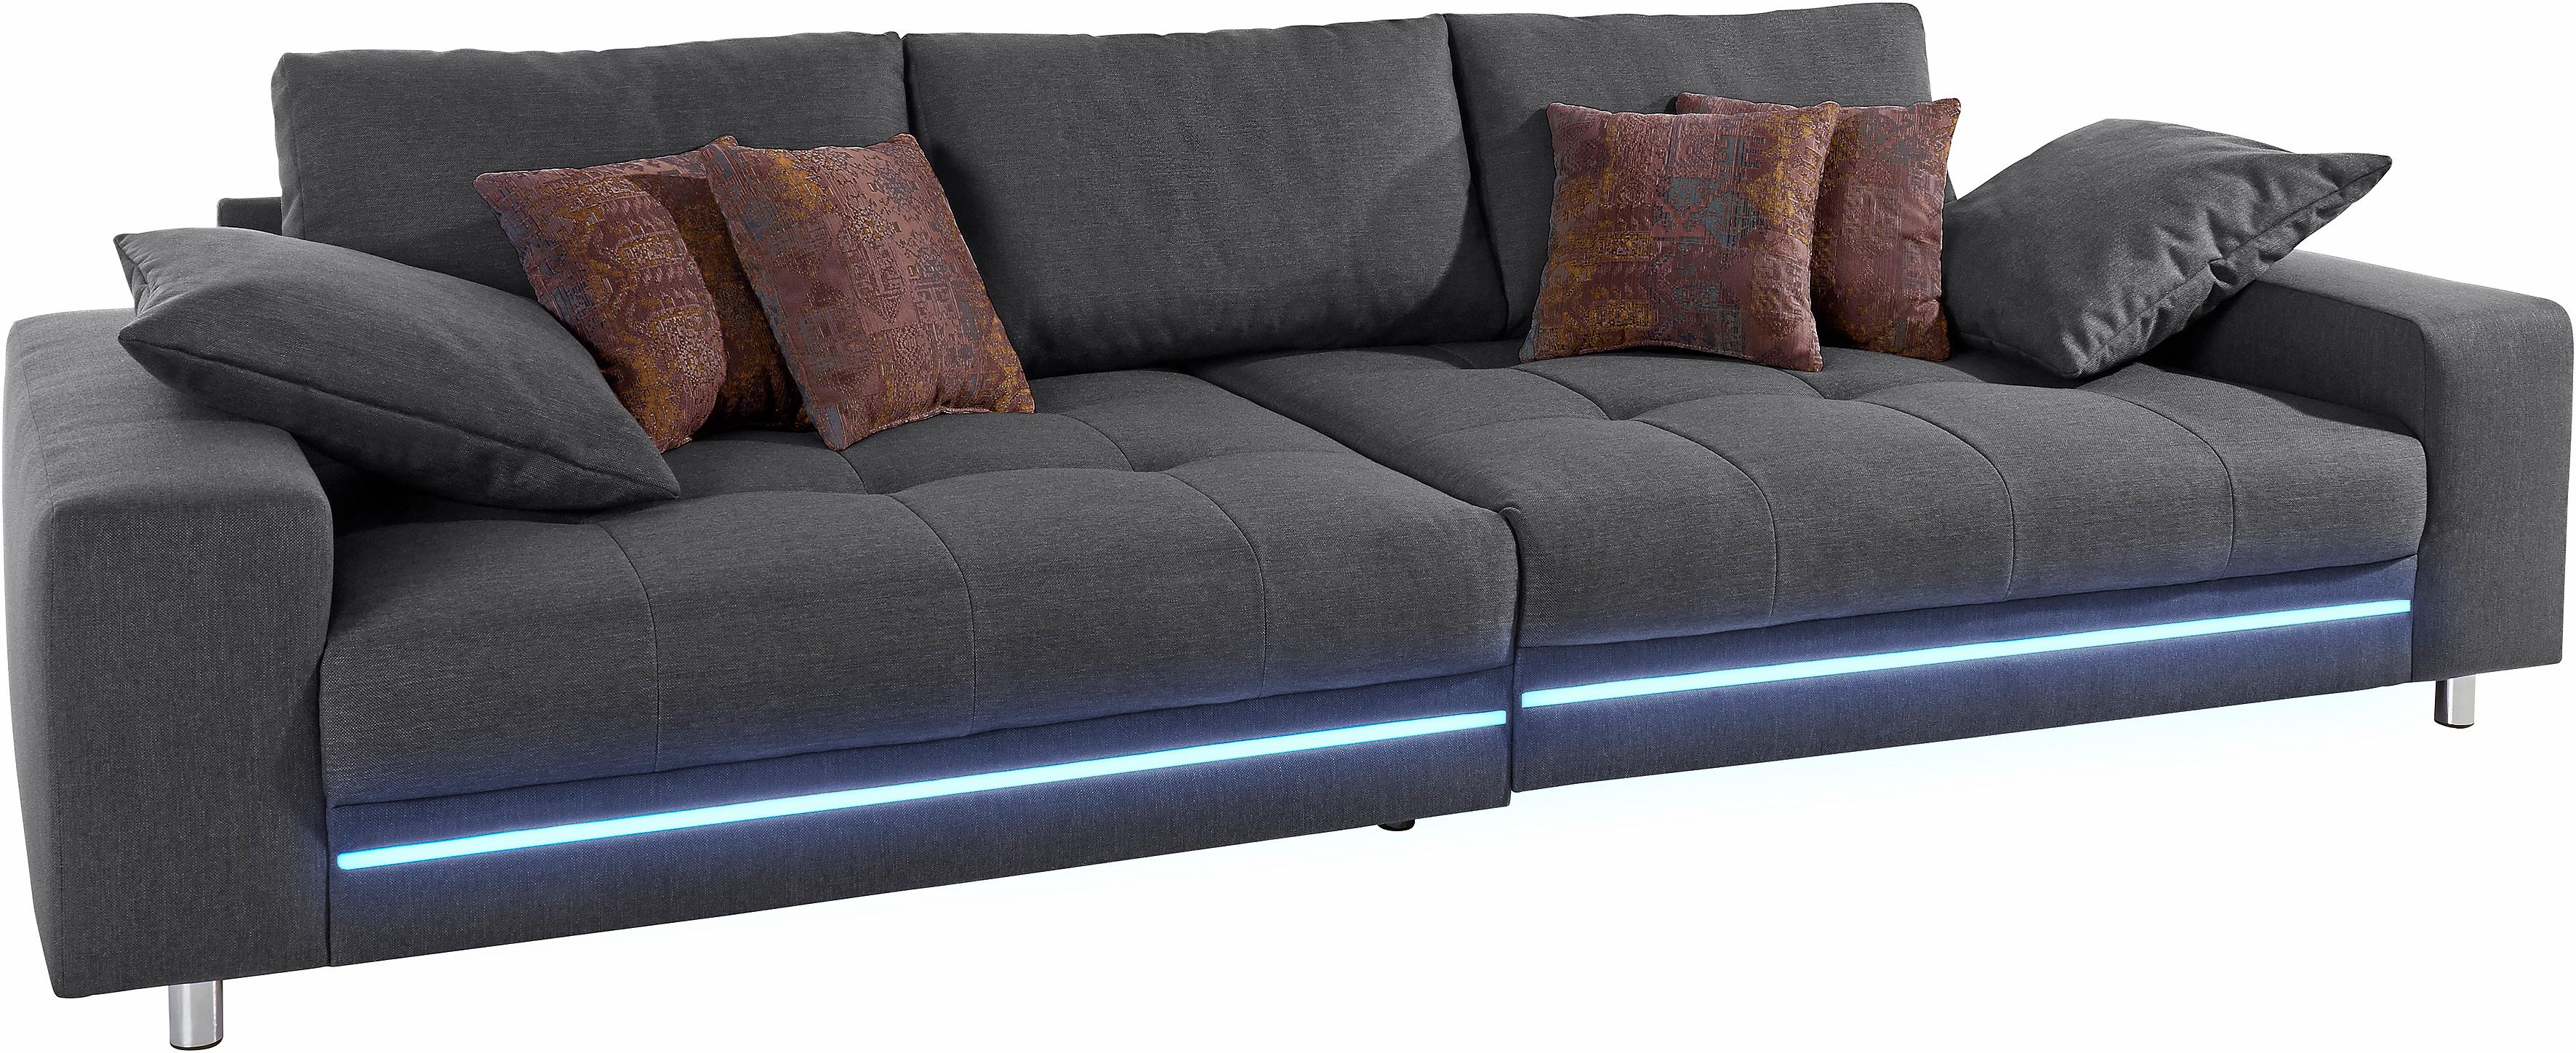 big sofa im otto online shop